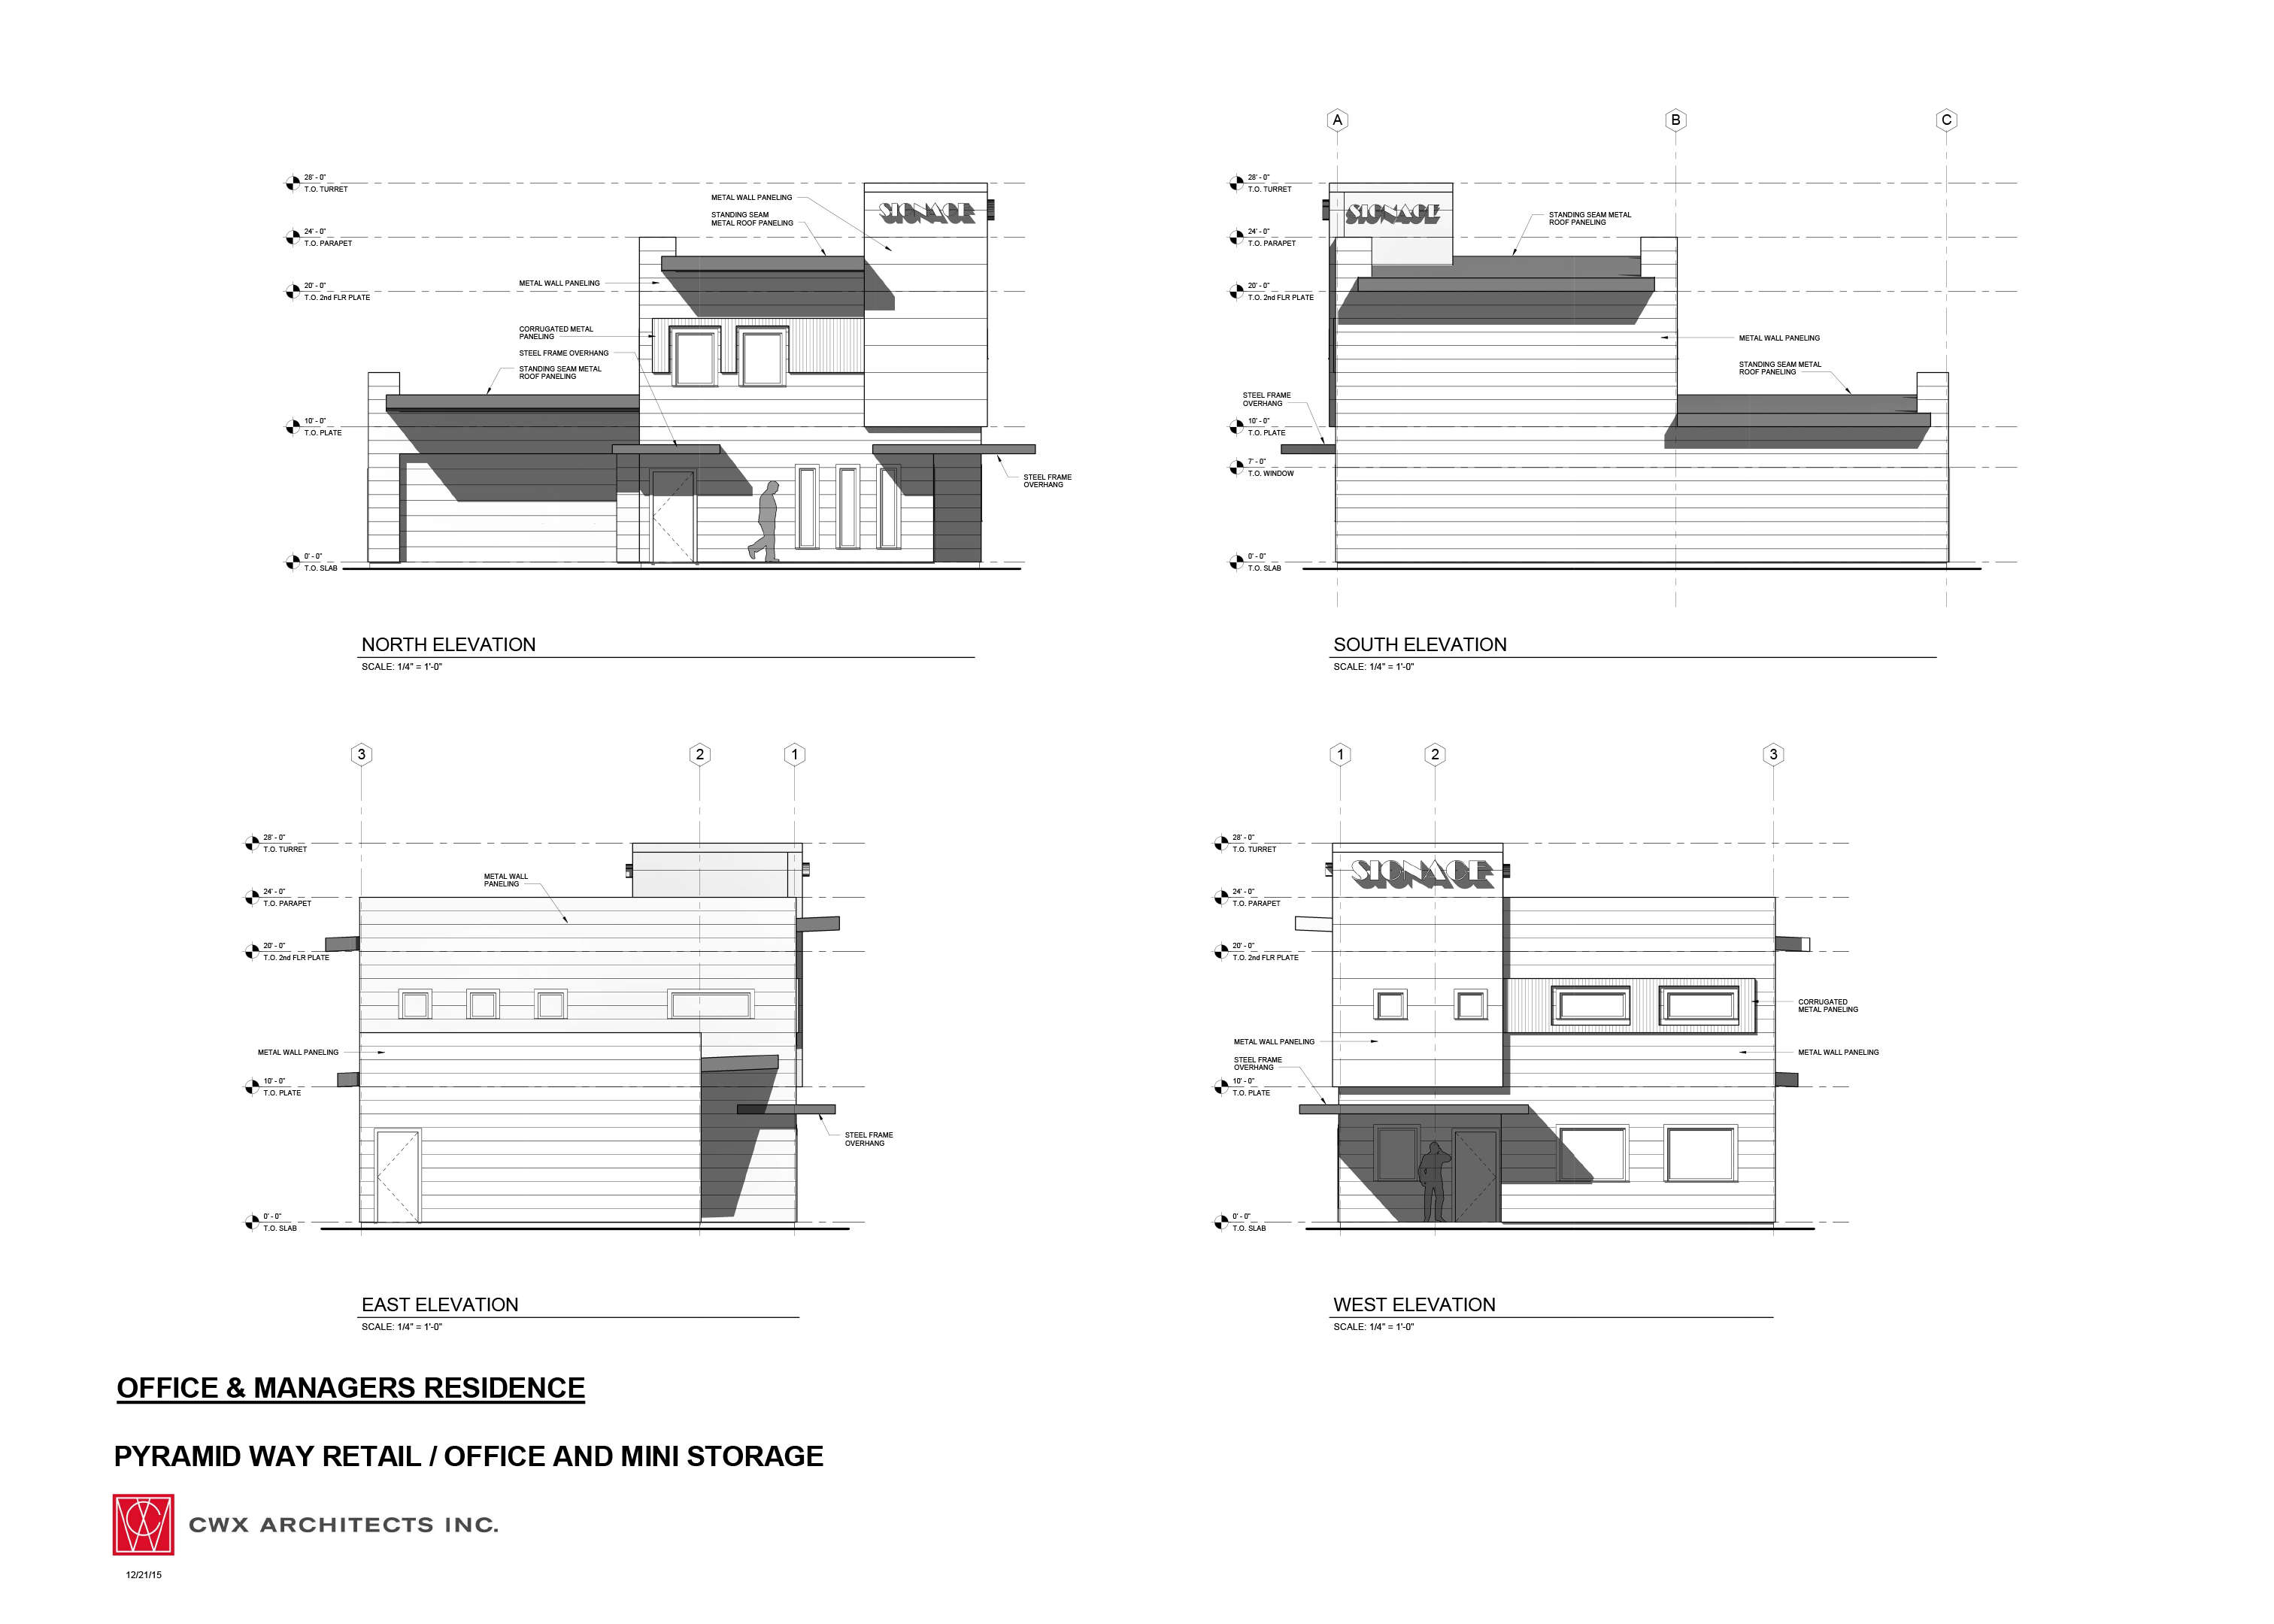 Pyramid-Way—Office-&-Managers-Residence—Elevations-2-12-16